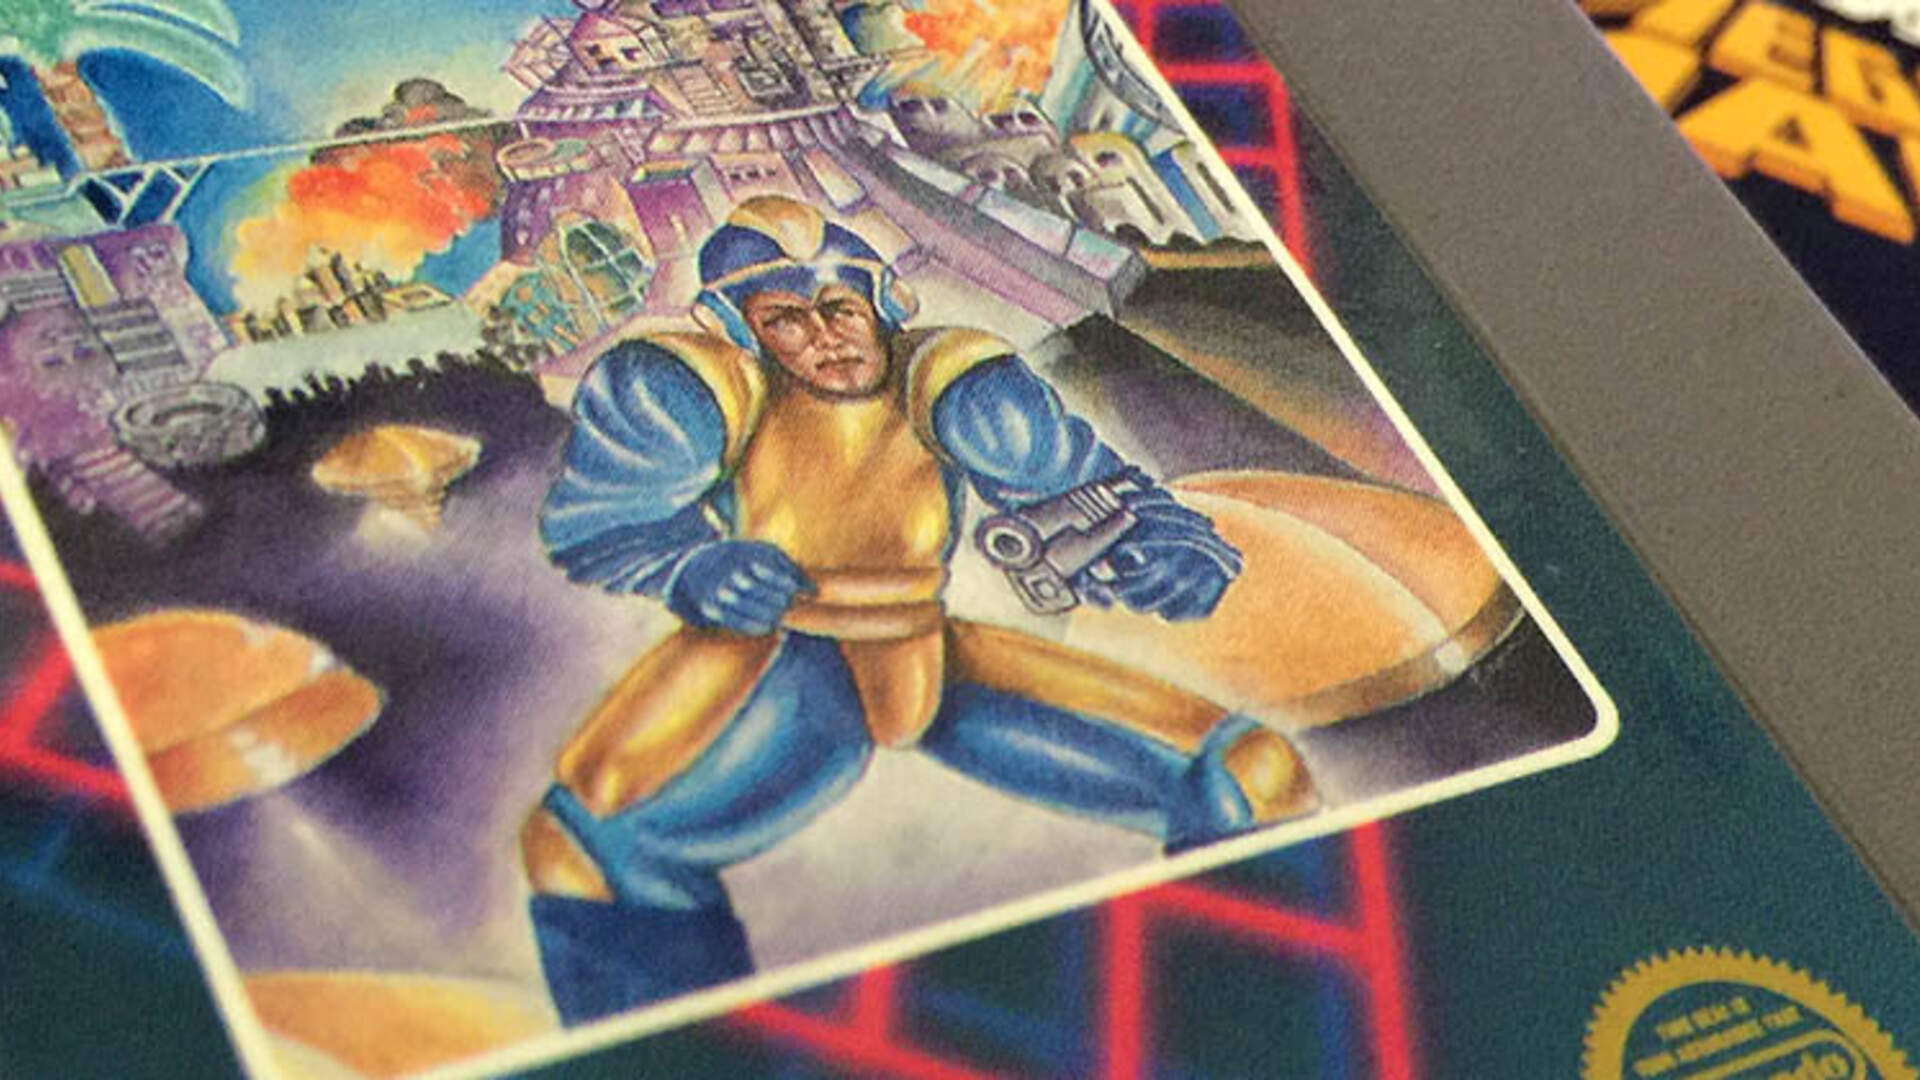 Today's USstreamer Retro Show Kicks Off the Mega Man-a-thon [Archived]